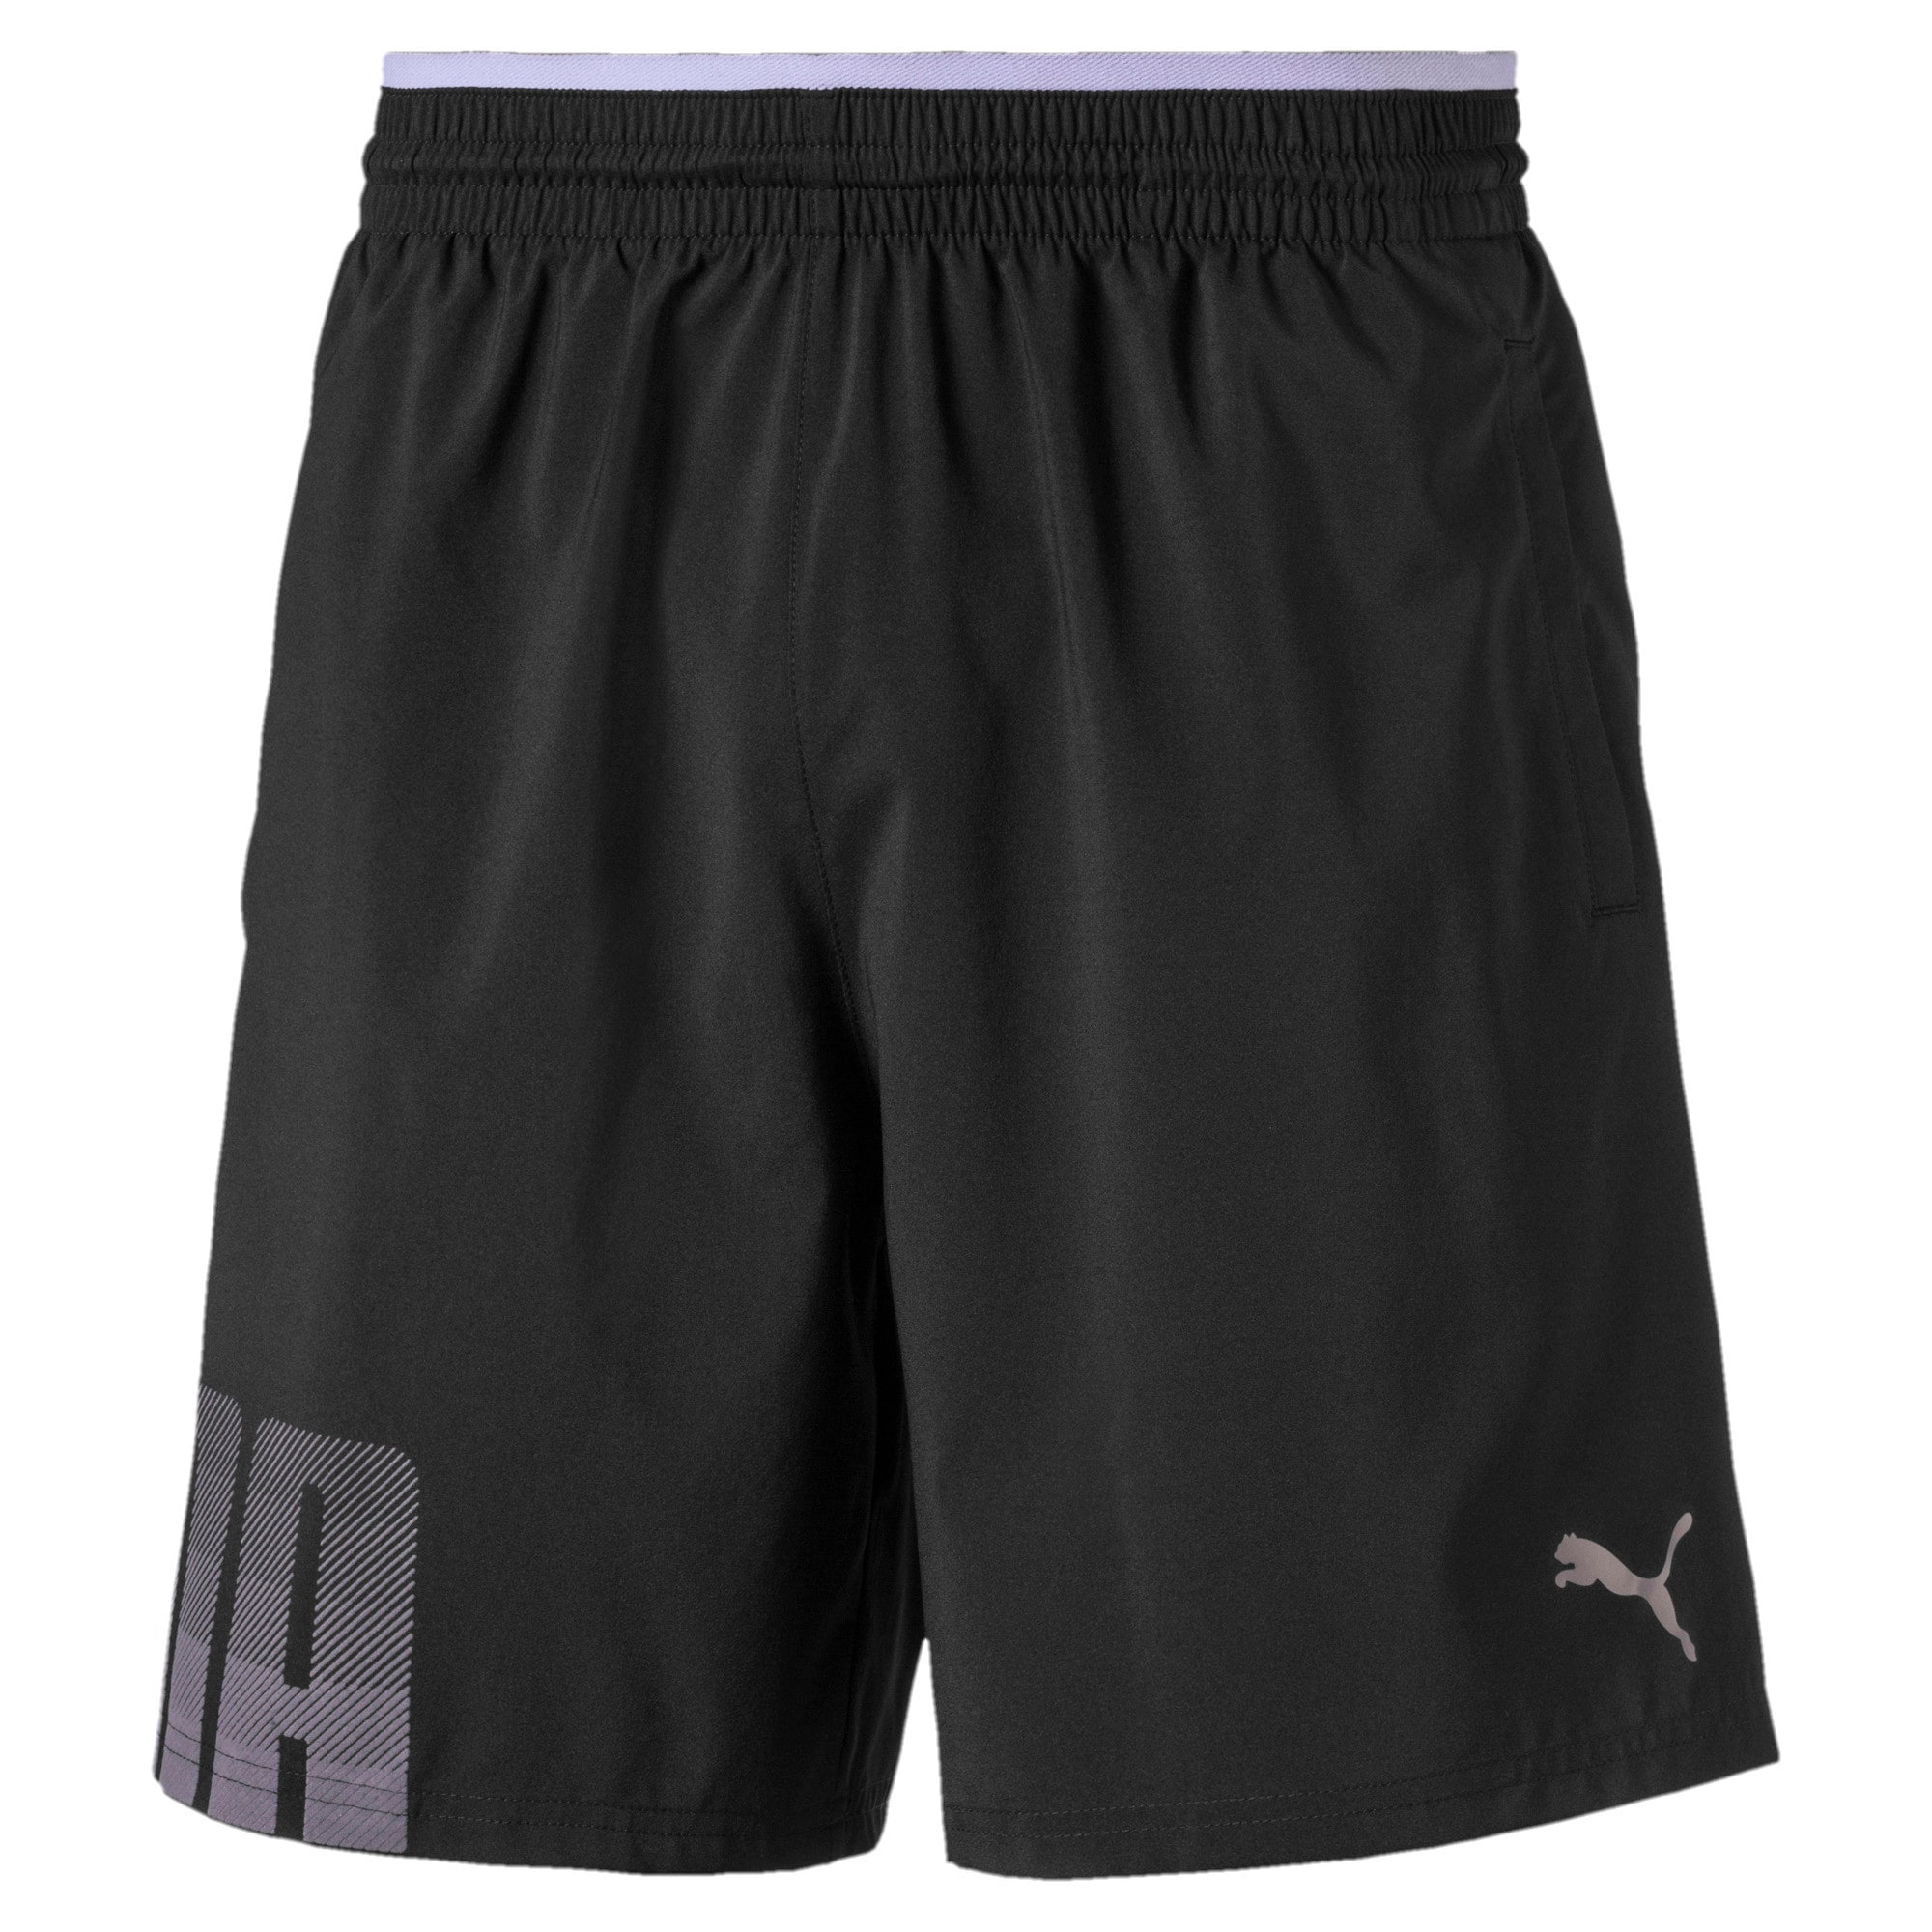 Thumbnail 4 of Collective Woven Men's Training Shorts, Puma Black, medium